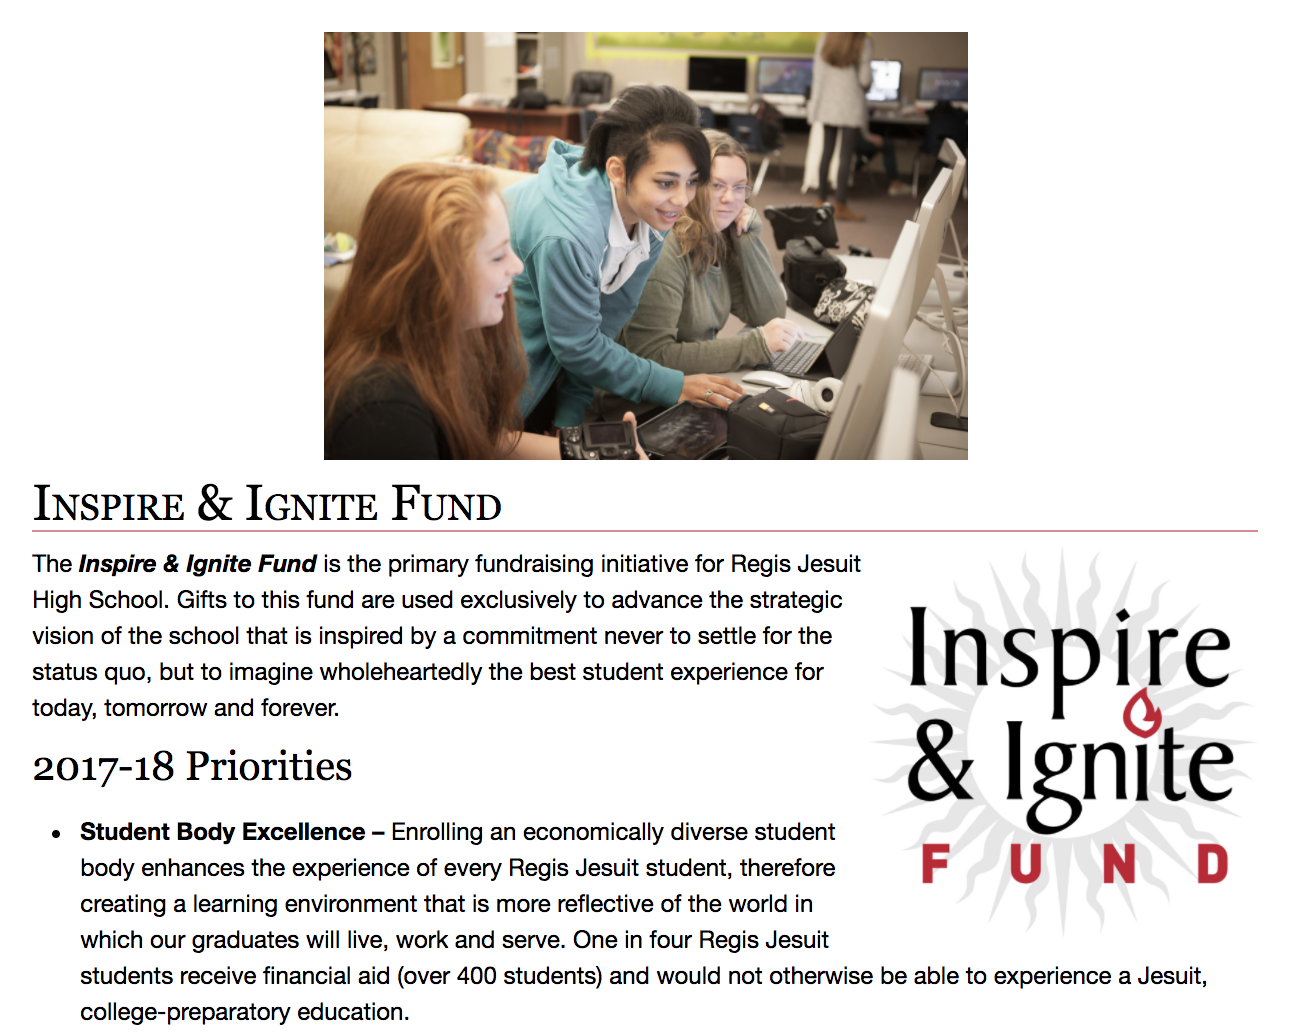 Image: Regis Jesuit High School's Inspire & Ignite Fund